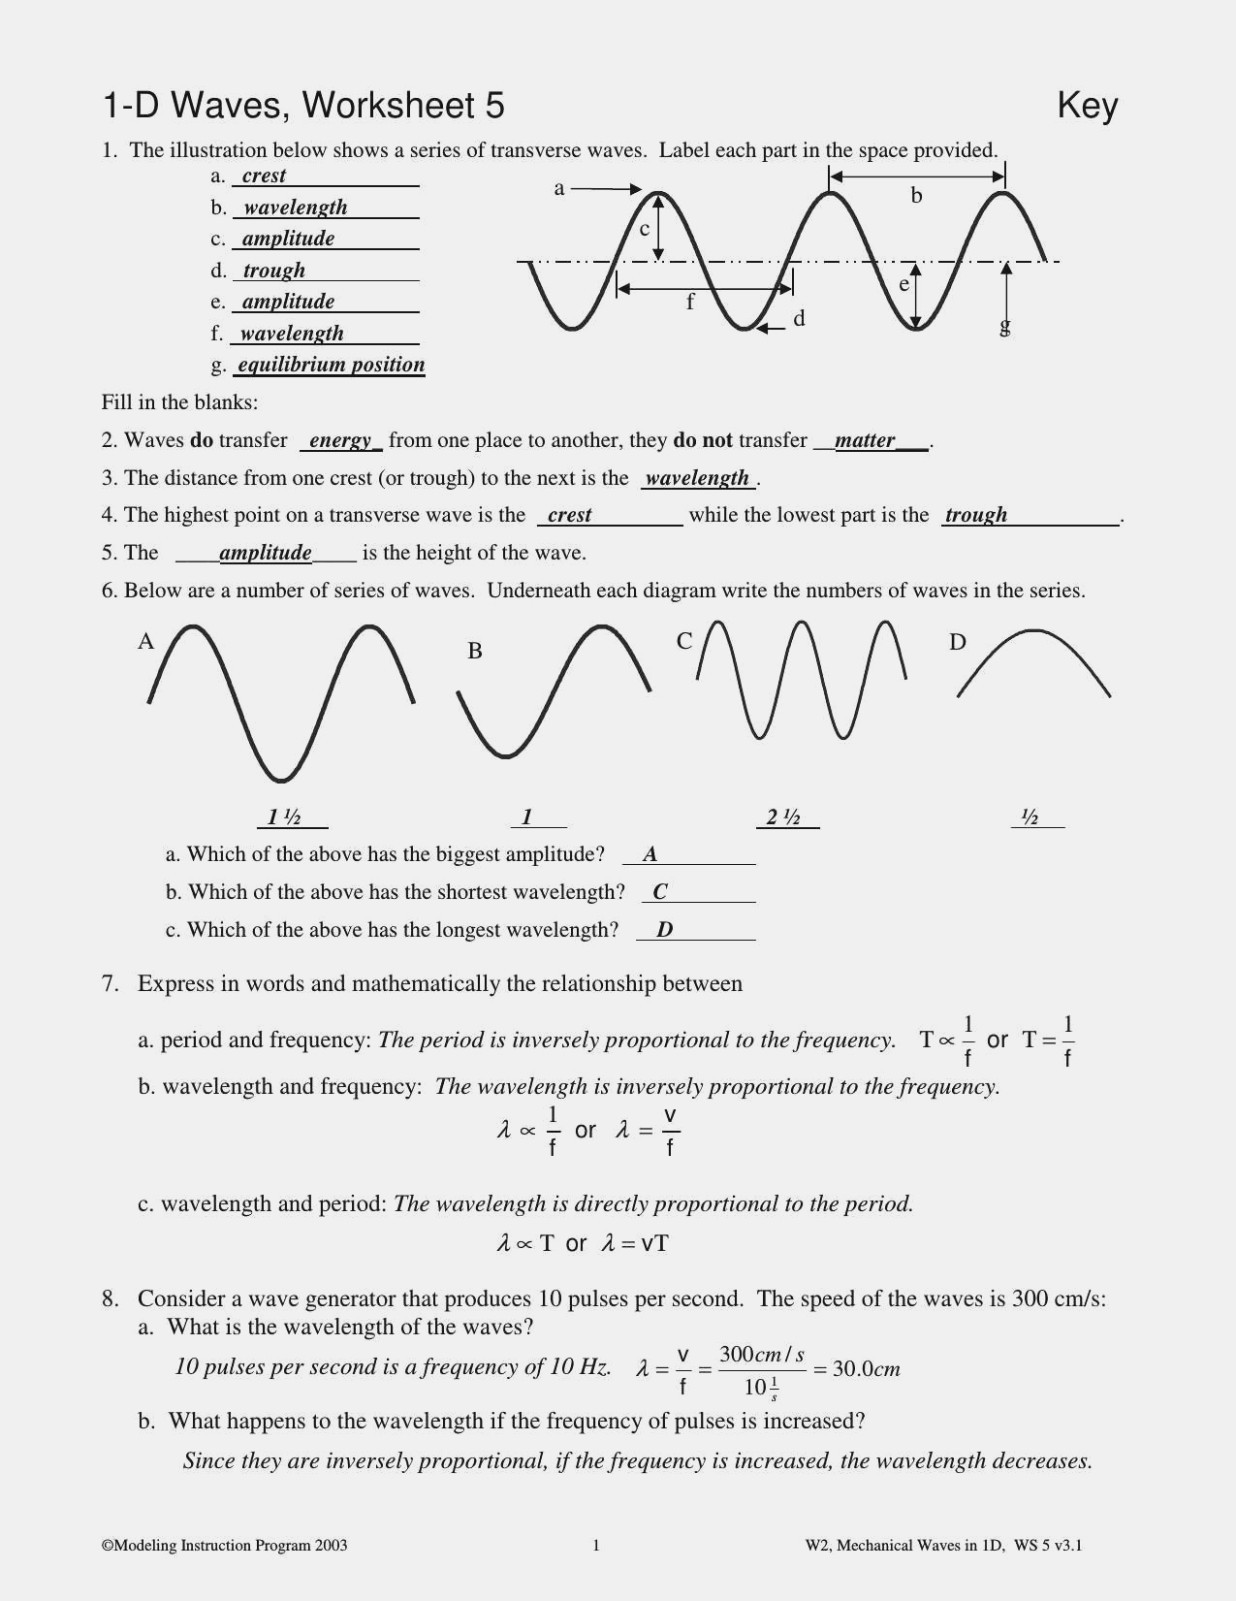 Waves Worksheet 1 Answers 33 Waves Worksheet Answer Key Free Worksheet Spreadsheet